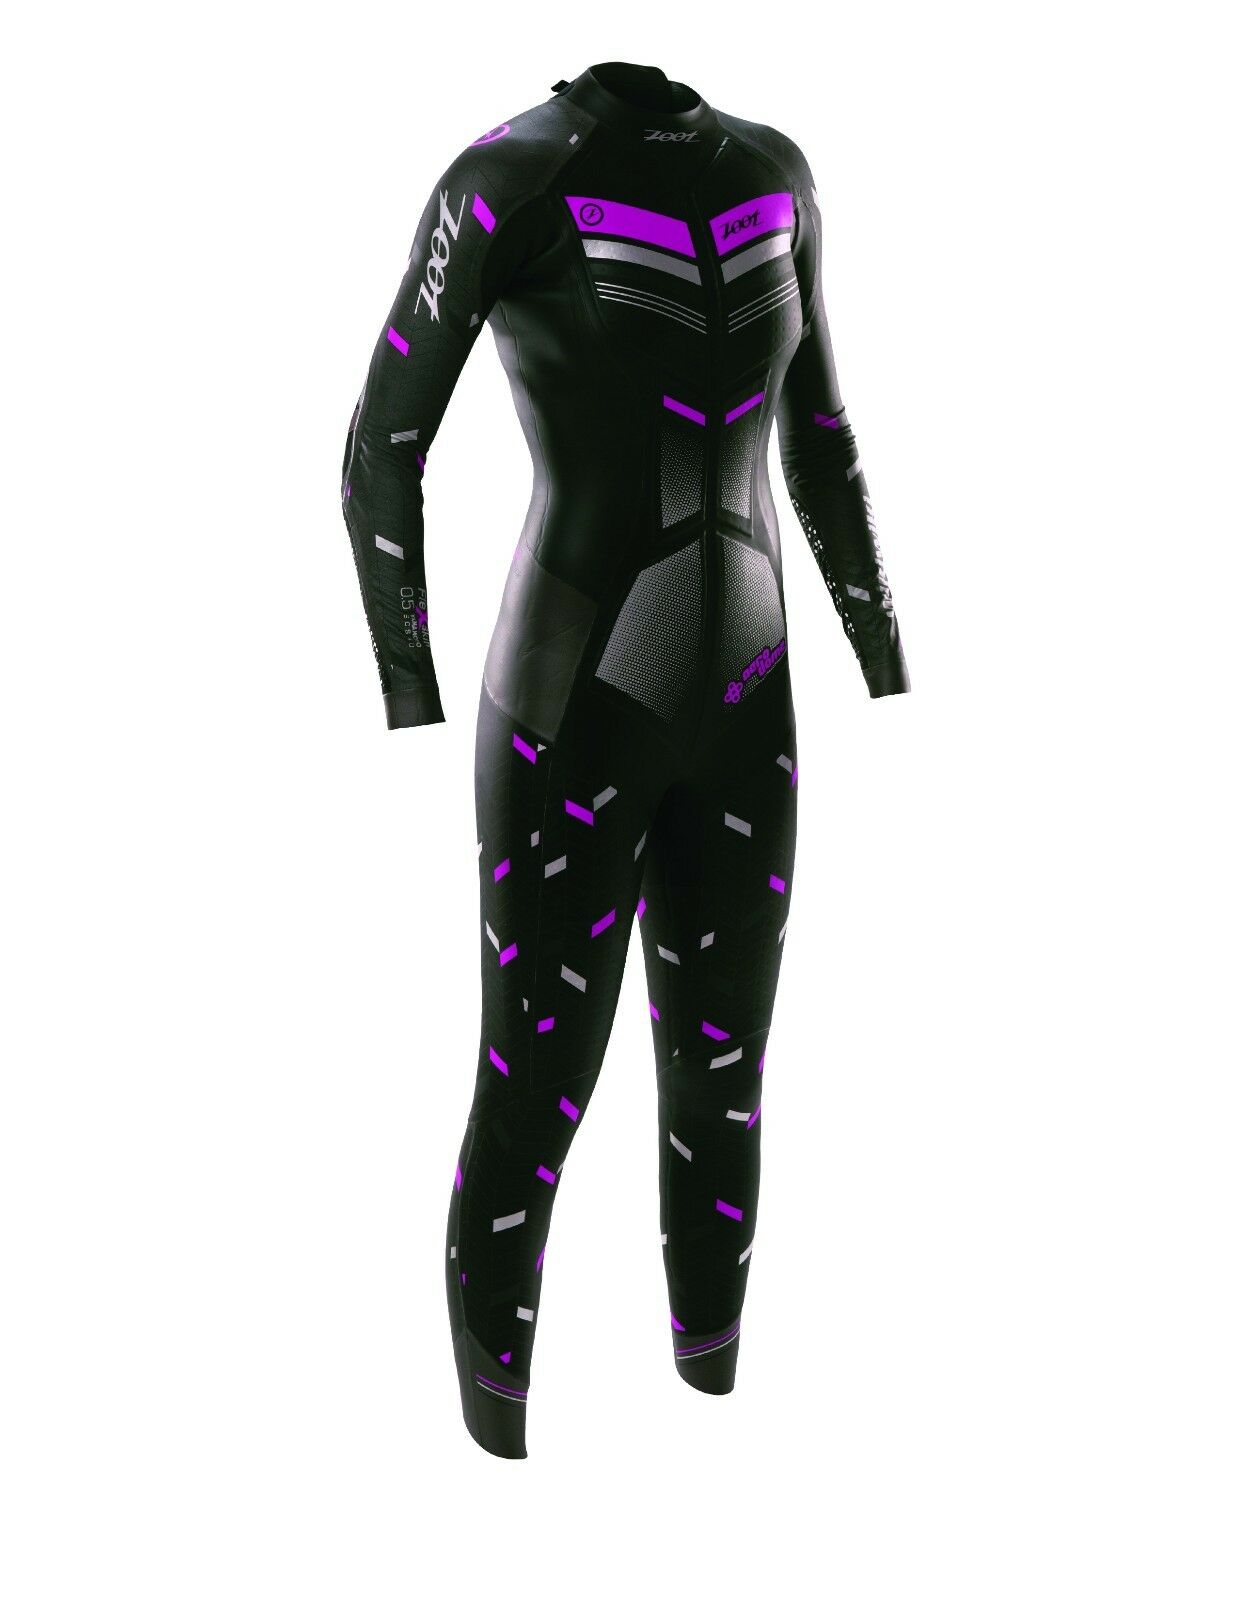 75 OFF Brand New Zoot Sport Womens WIKIWIKI Wetsuit